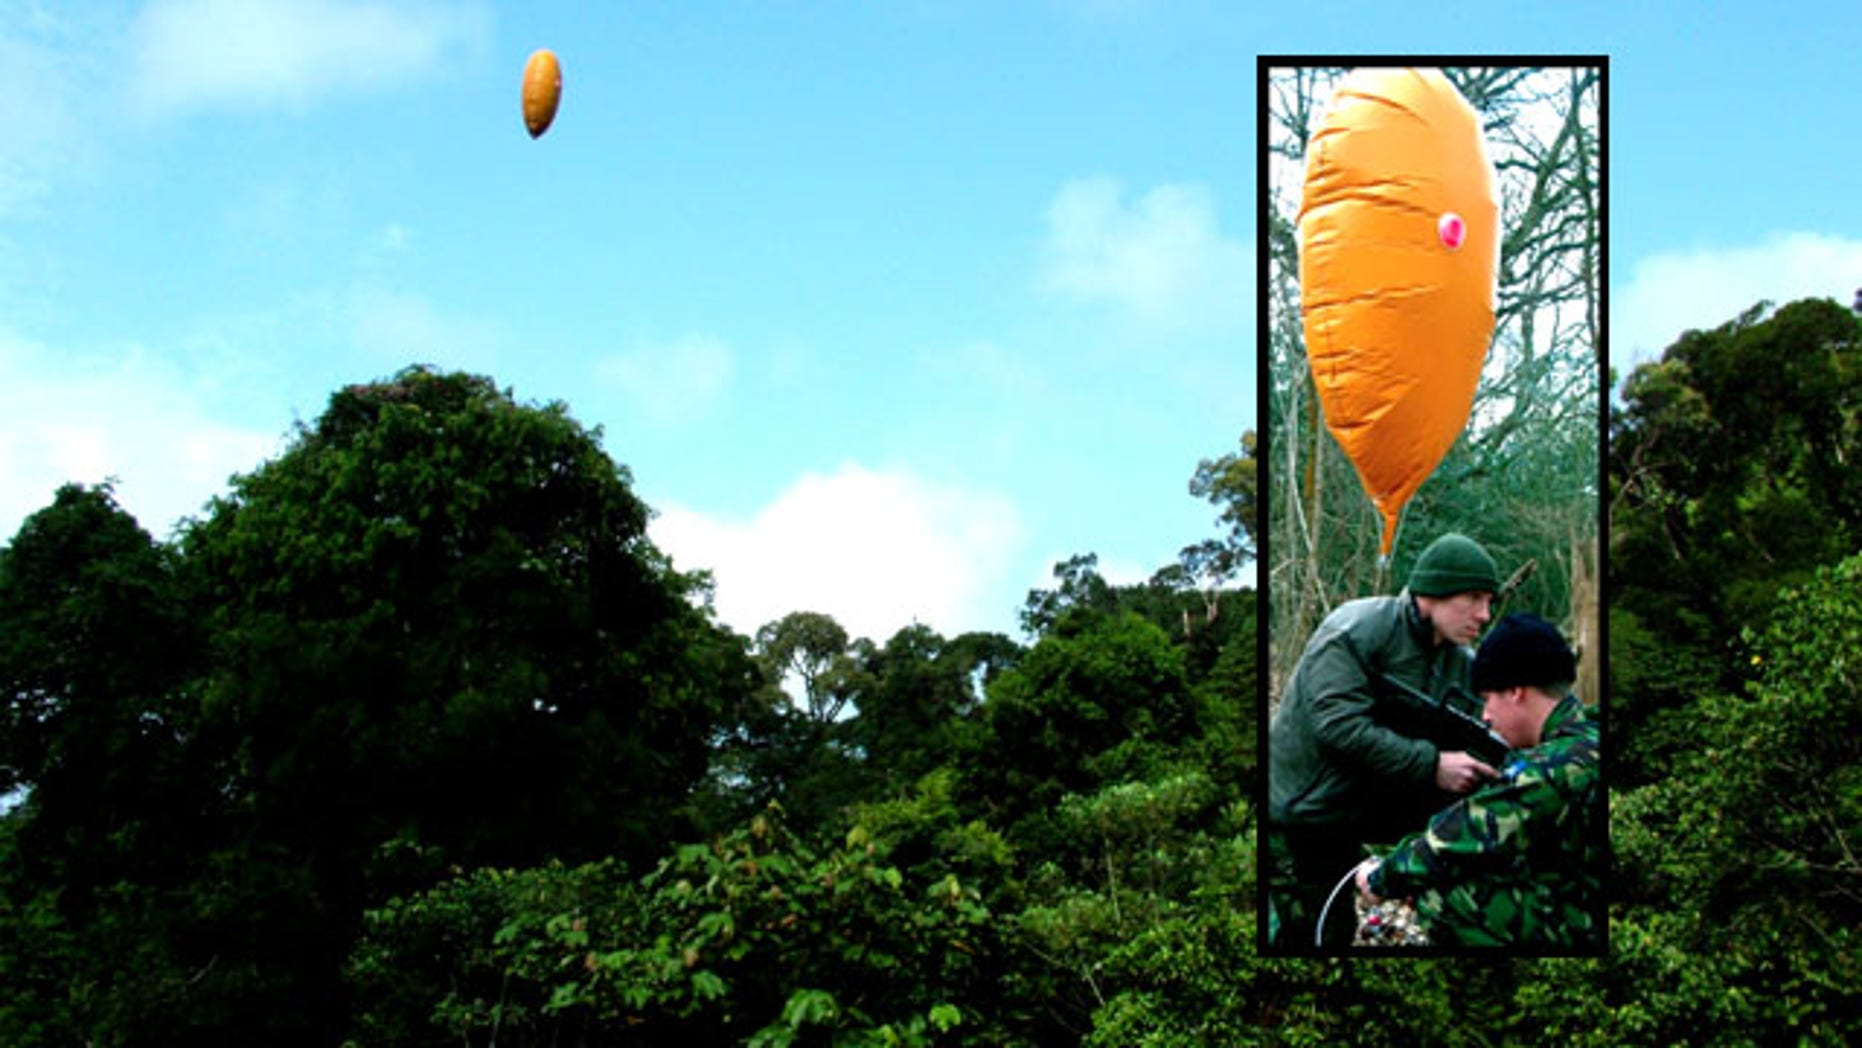 A bright orange balloon seems like the last thing a Special Forces operator would want in the jungle. Military supply company BCB argues it just might save his life.